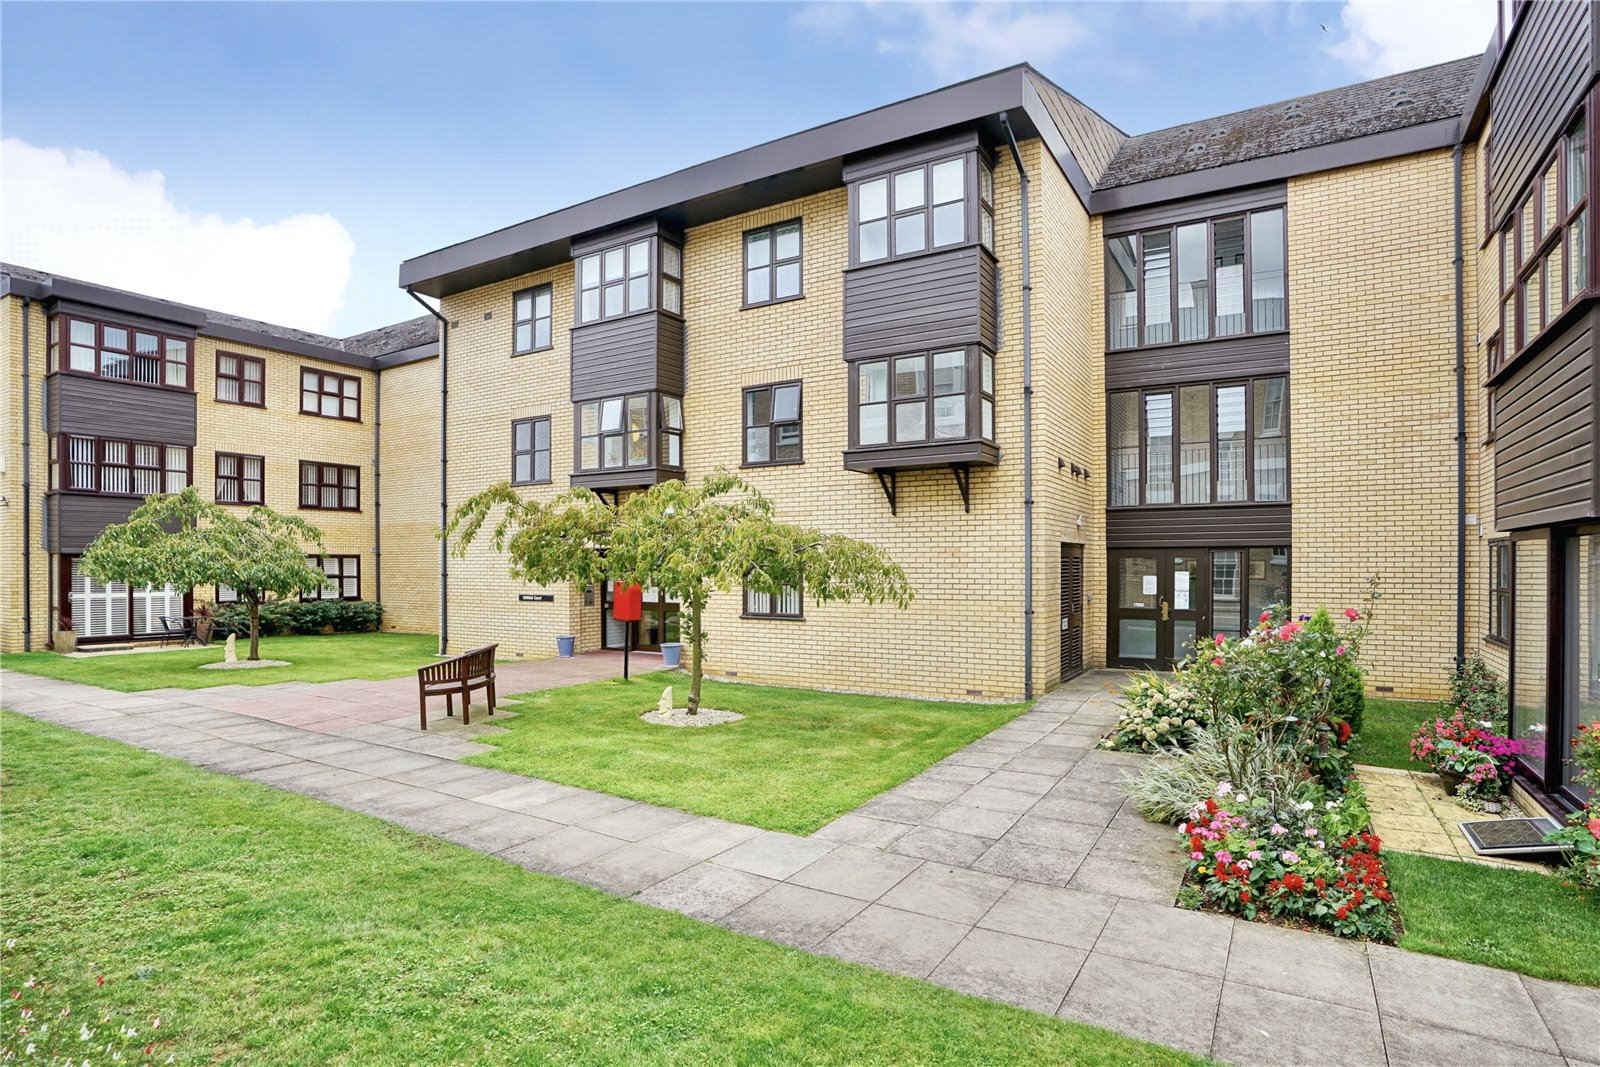 1 bed apartment for sale in Brampton Road, PE29 3TT, PE29